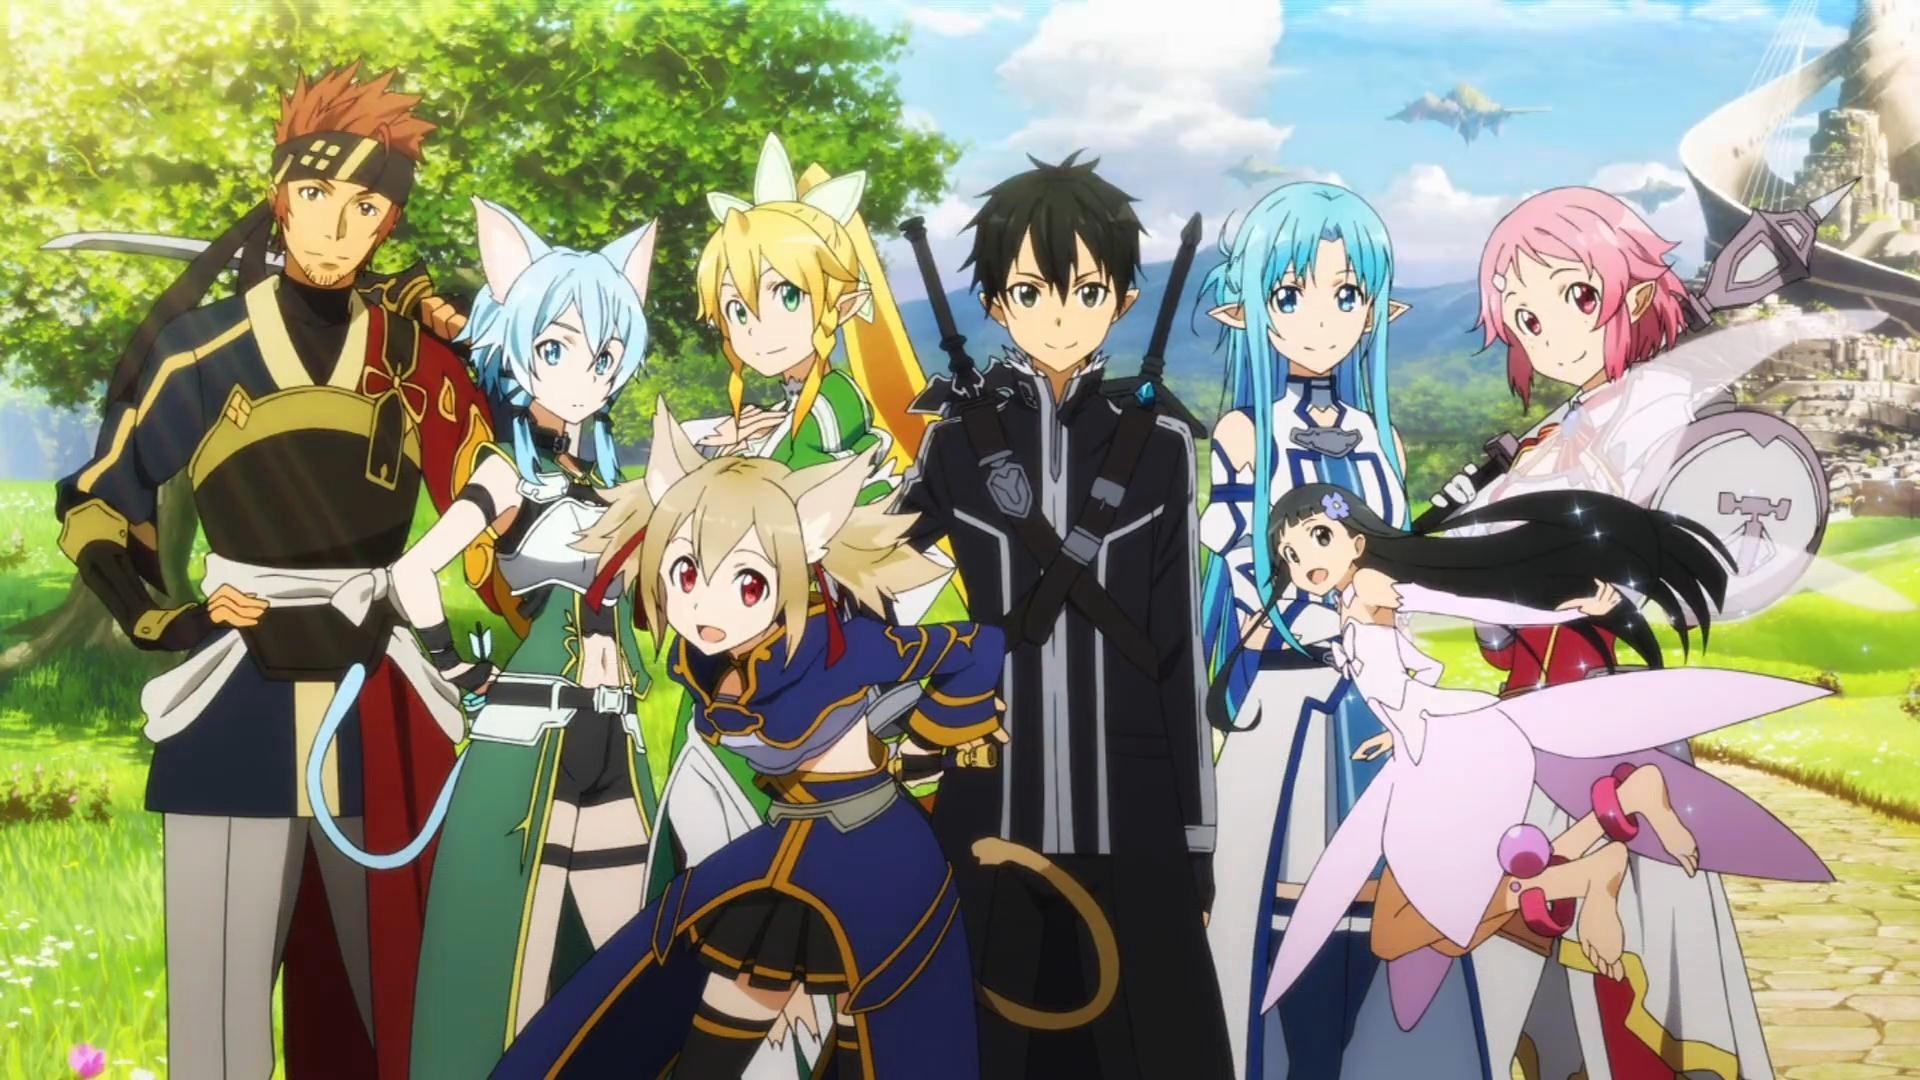 1920x1080 Sword Art Online HD Wallpaper 1920A 1080